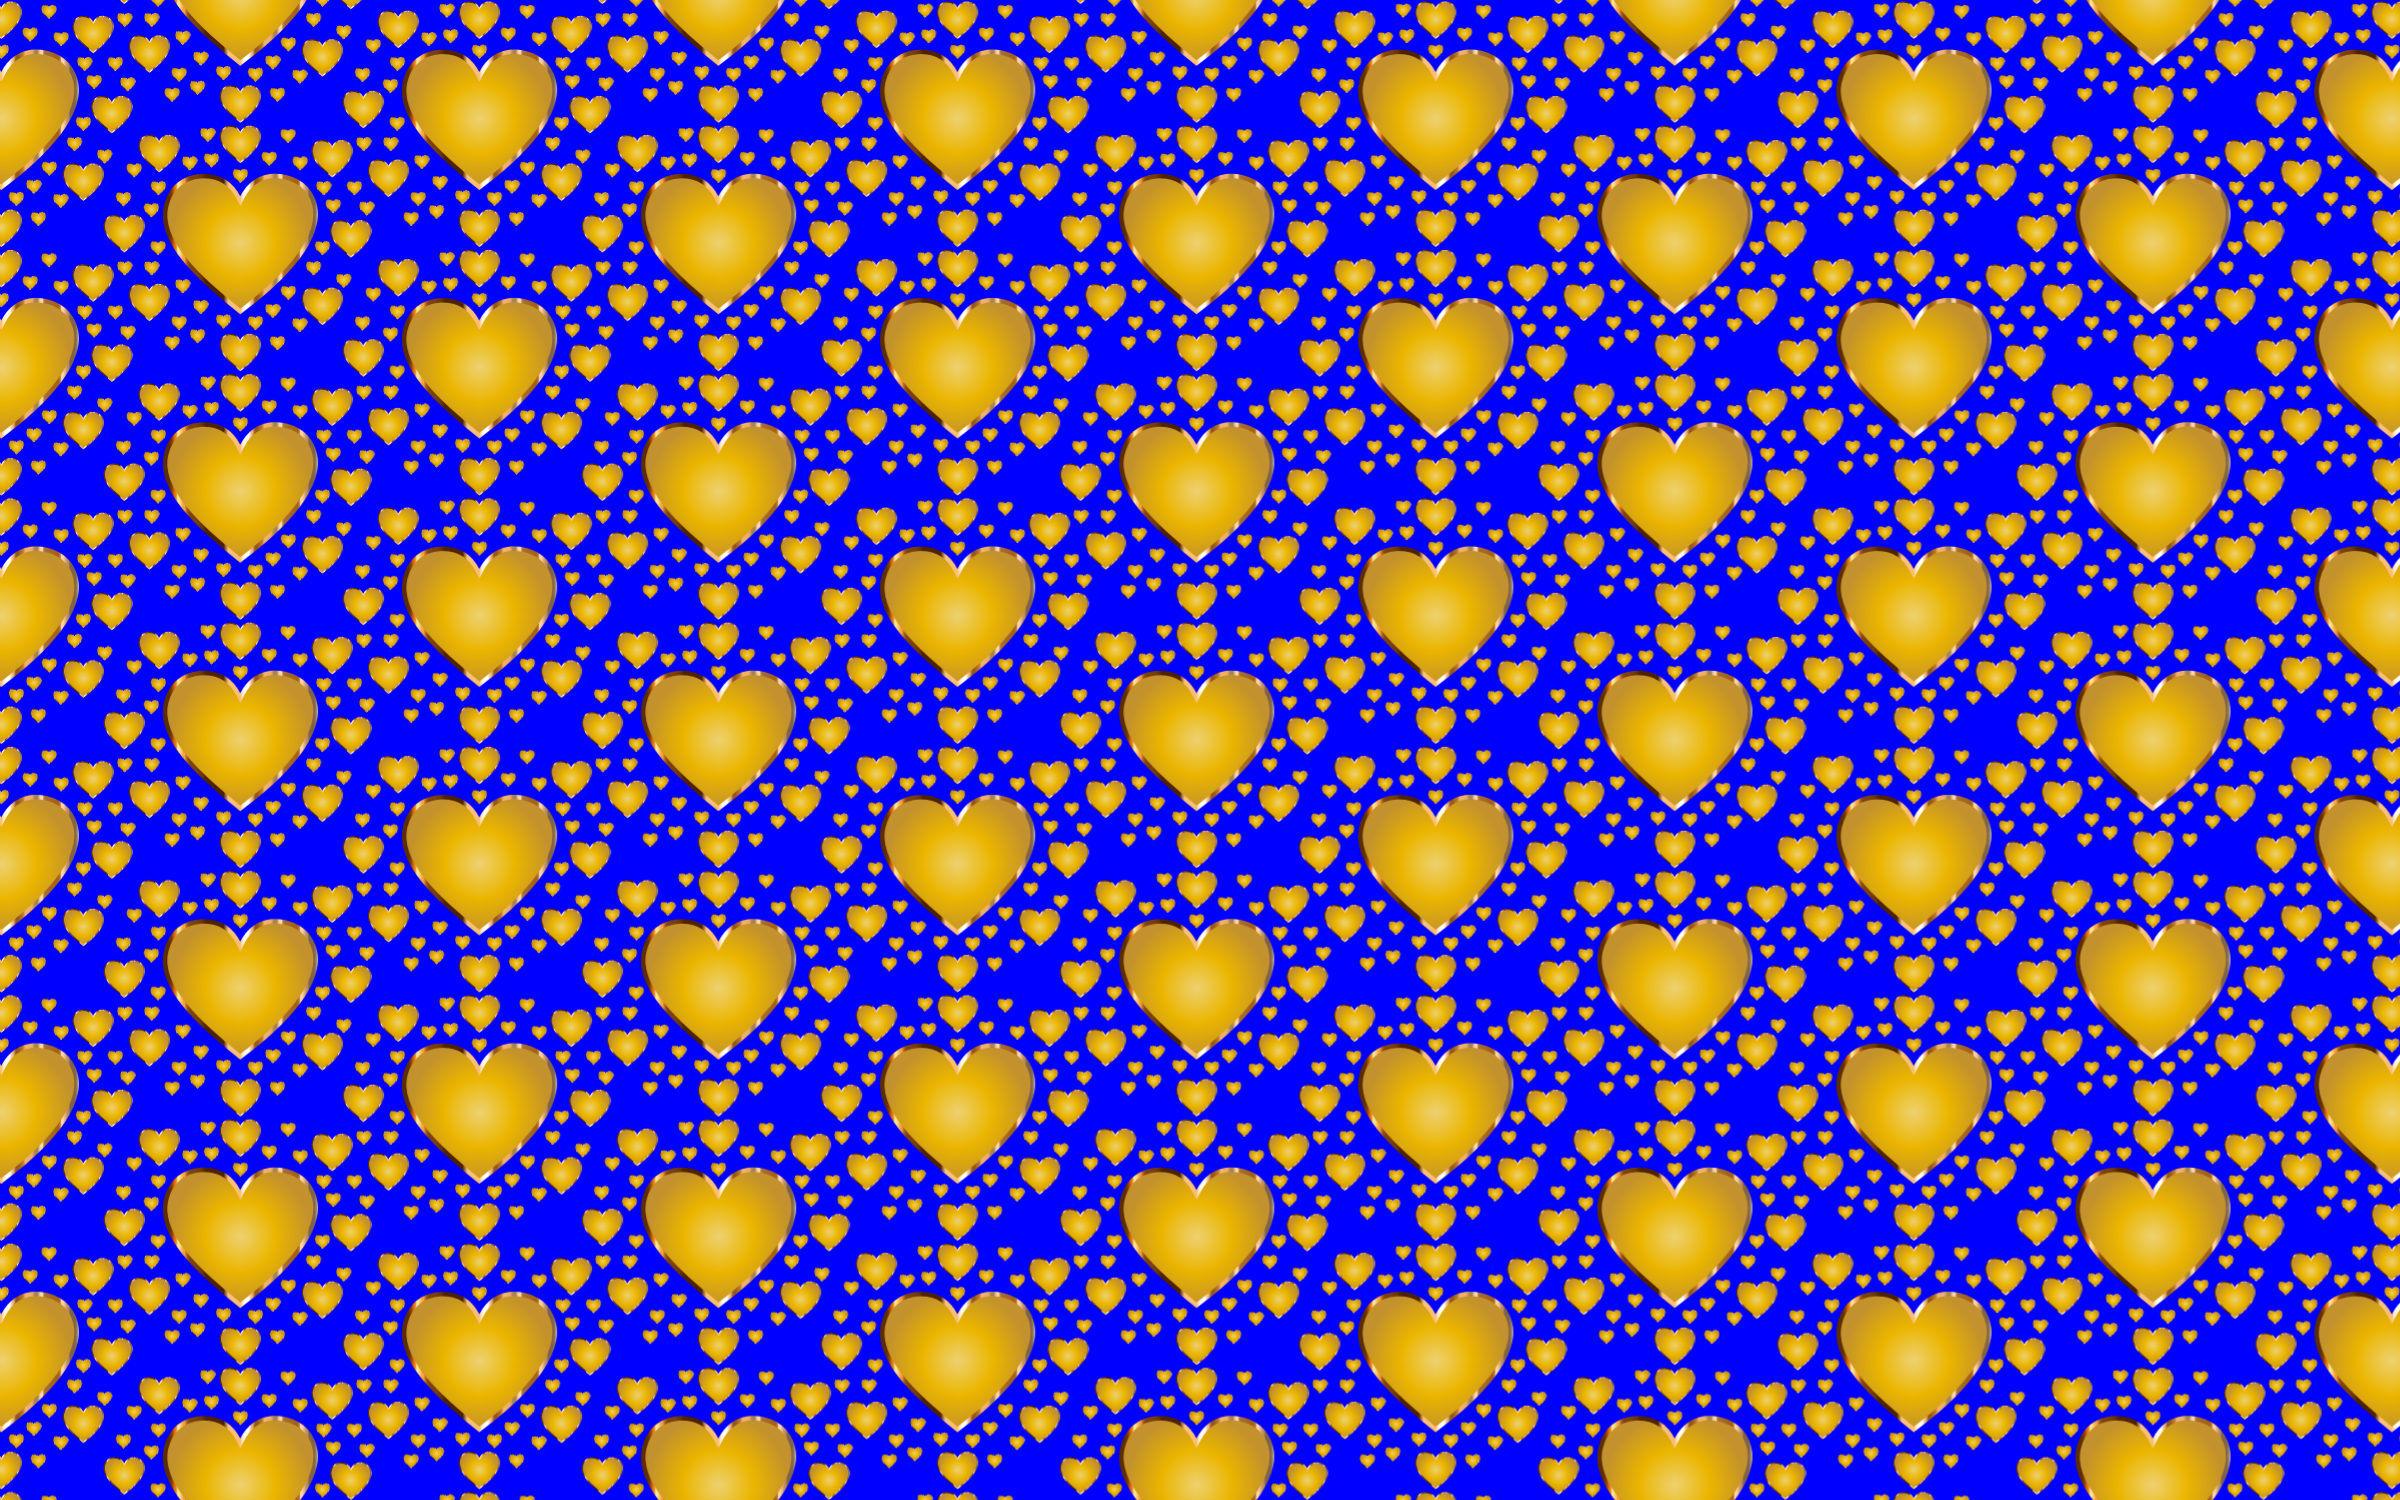 Seamless Gold Heart Pattern 2 by GDJ